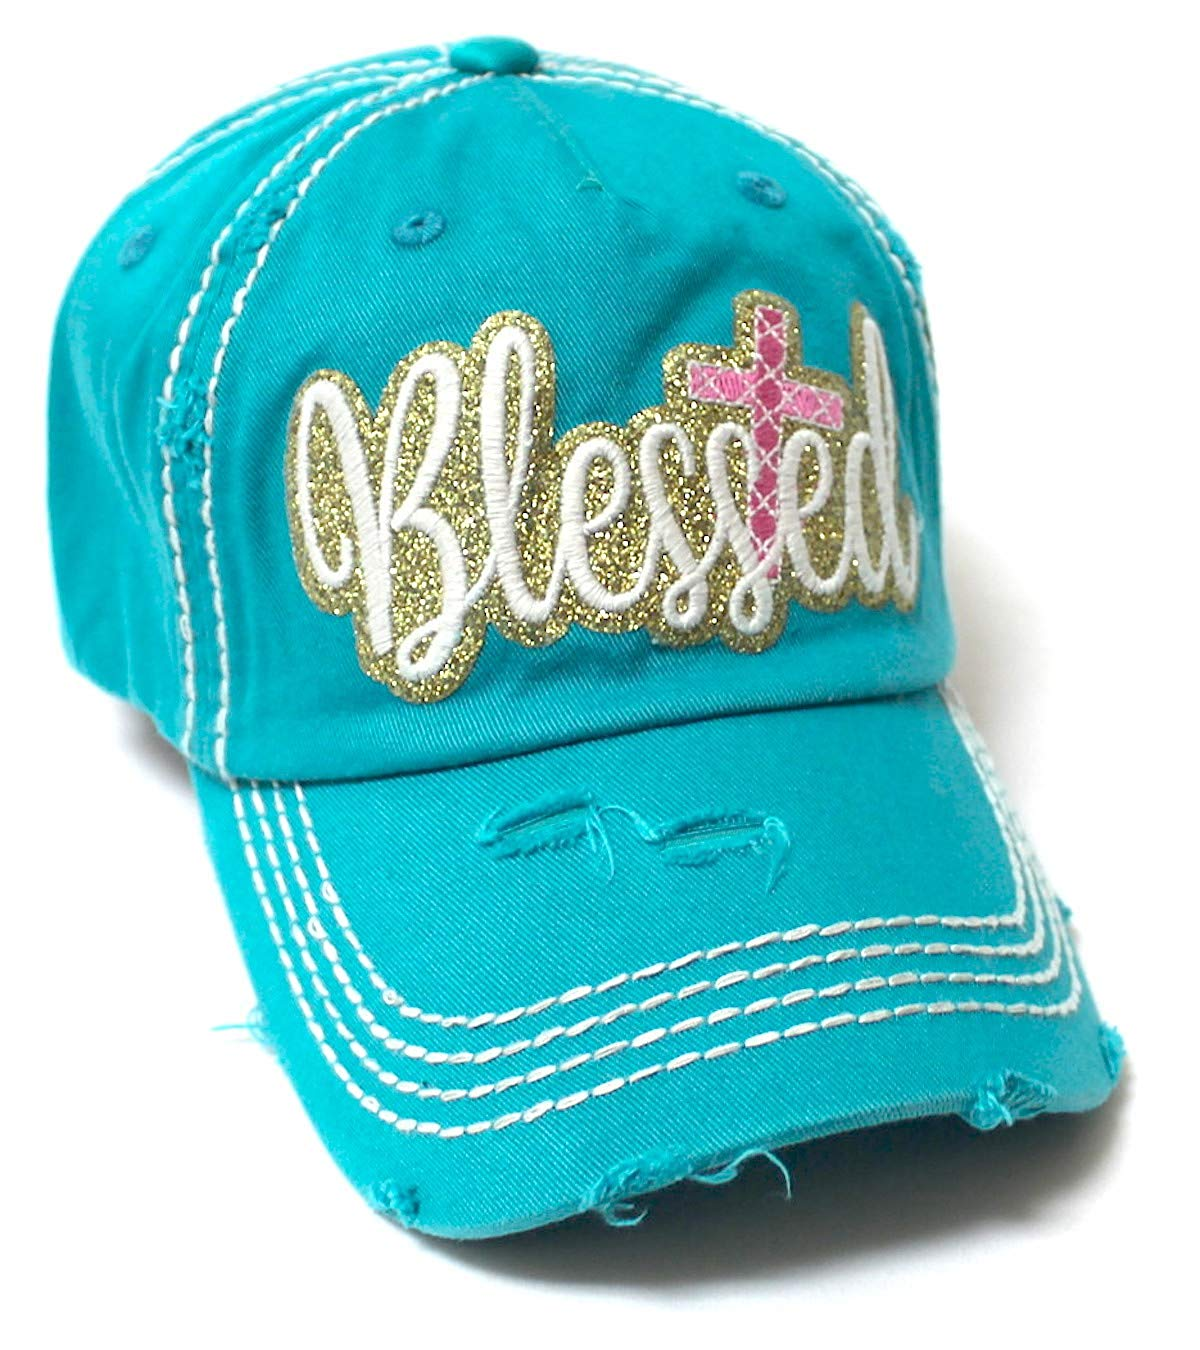 Women's Sparkle Blessed Glitter Ballcap Embellished Cross Monogram Embroidery, Turquoise - Caps 'N Vintage